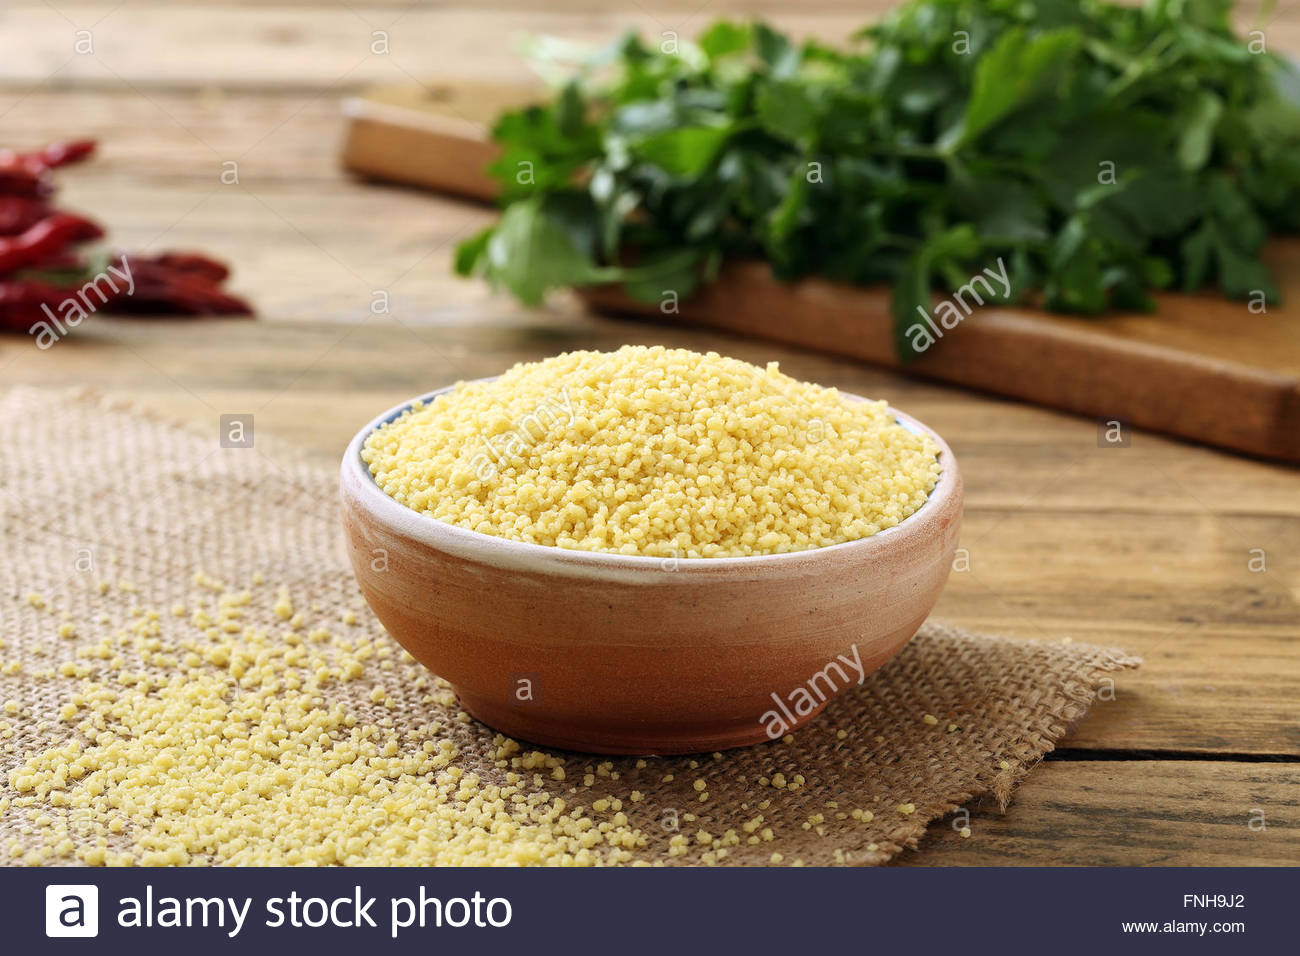 raw couscous in ceramic bowl on kitchen wooden table background - Stock Image